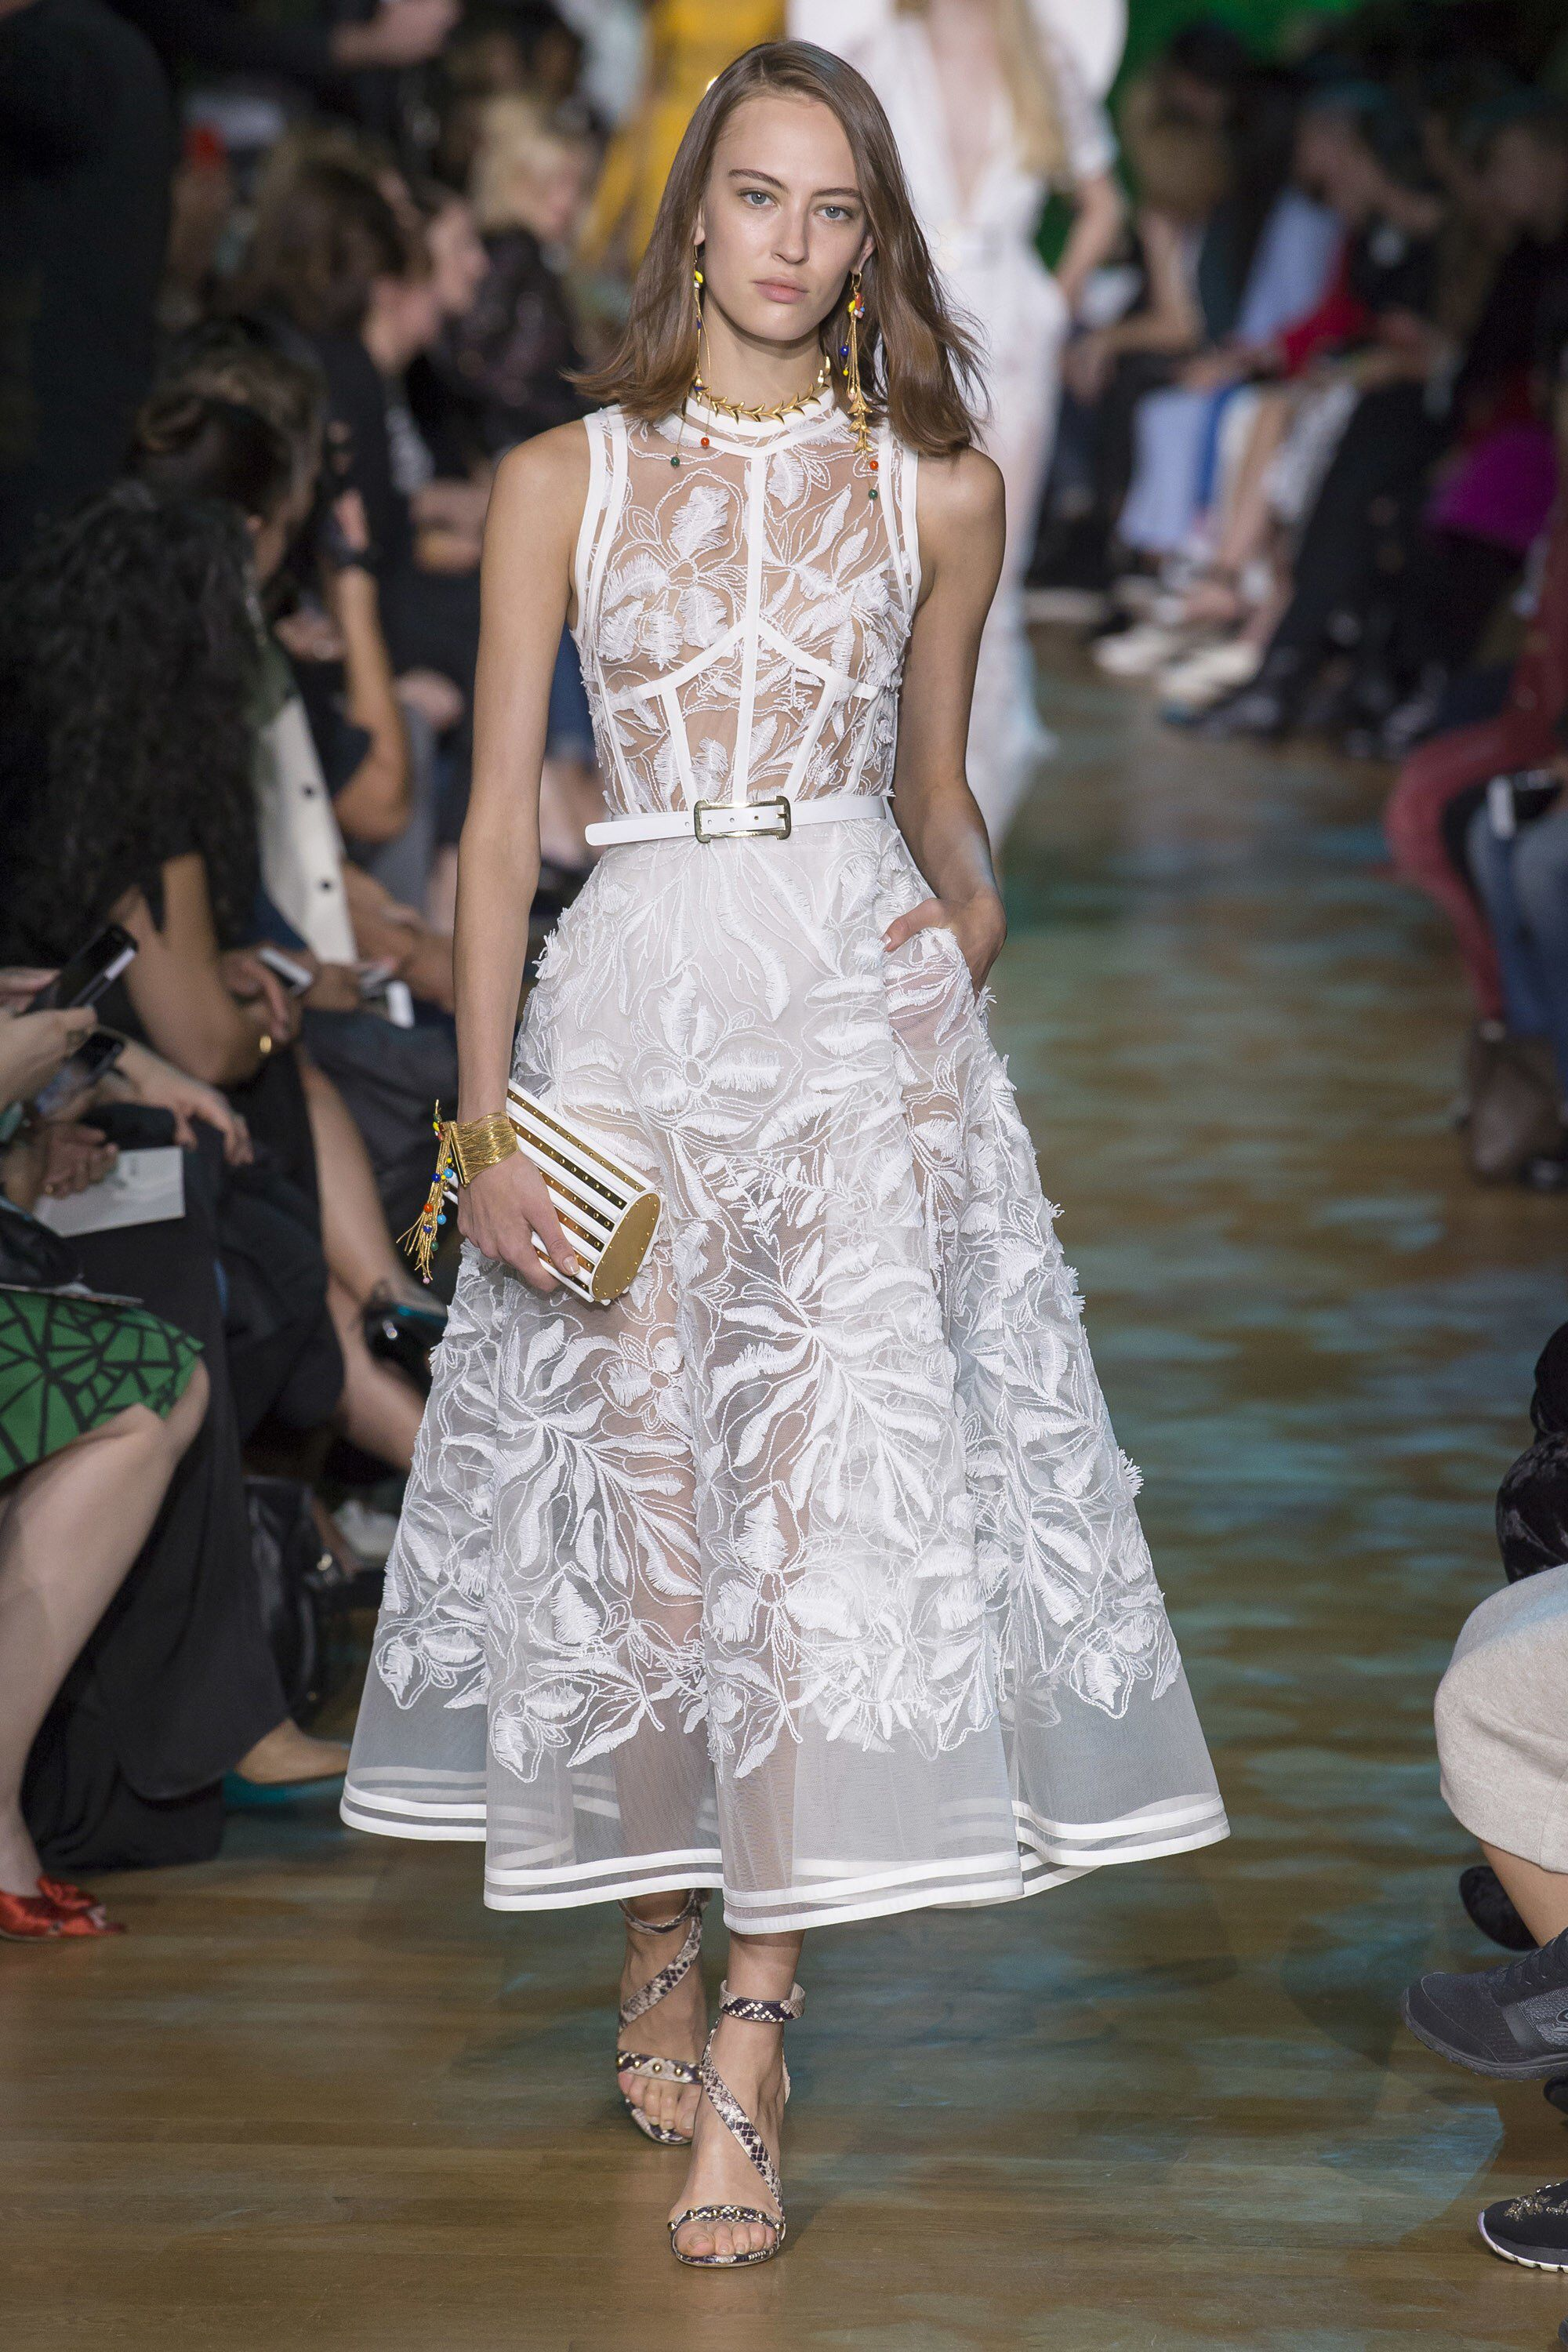 b812e90d79cb13 Elie Saab Spring 2018 RTW: I love this white a line dress with intricate  leaf embroidery!